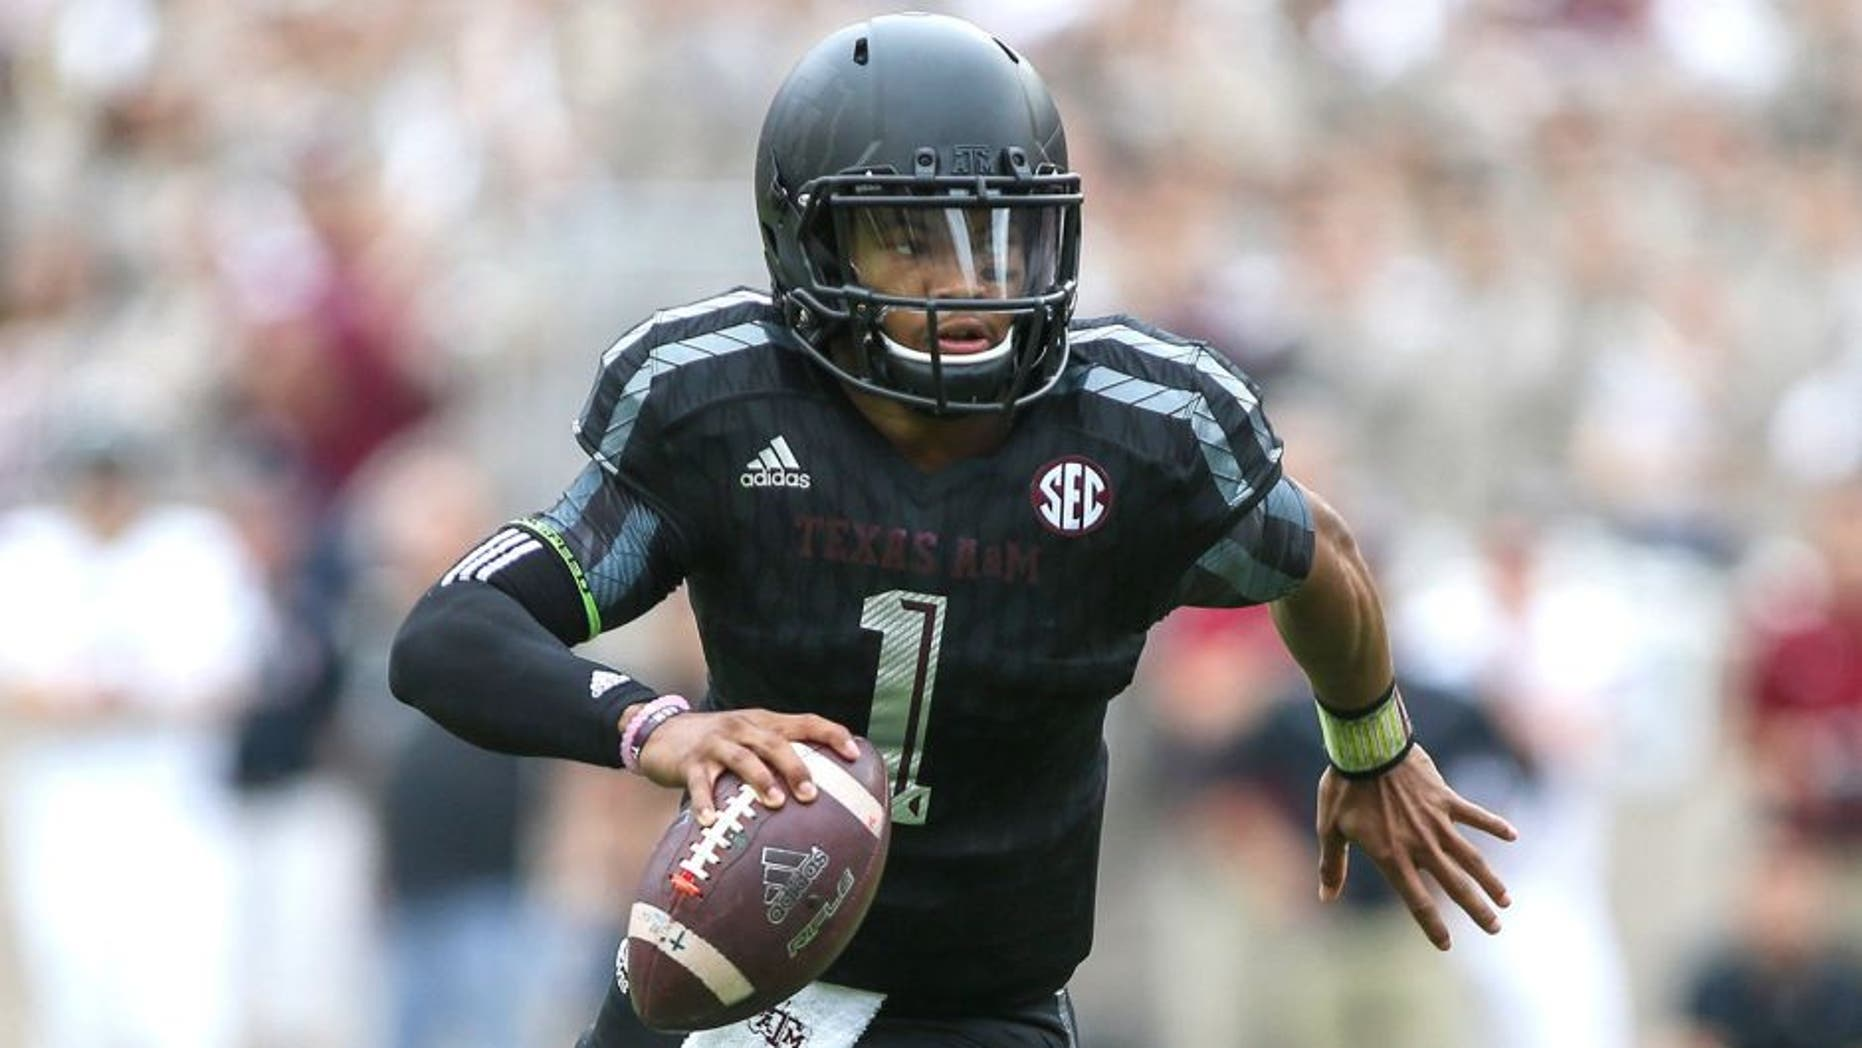 Oct 31, 2015; College Station, TX, USA; Texas A&M Aggies quarterback Kyler Murray (1) scrambles with the ball during the first quarter against the South Carolina Gamecocks at Kyle Field. Mandatory Credit: Troy Taormina-USA TODAY Sports